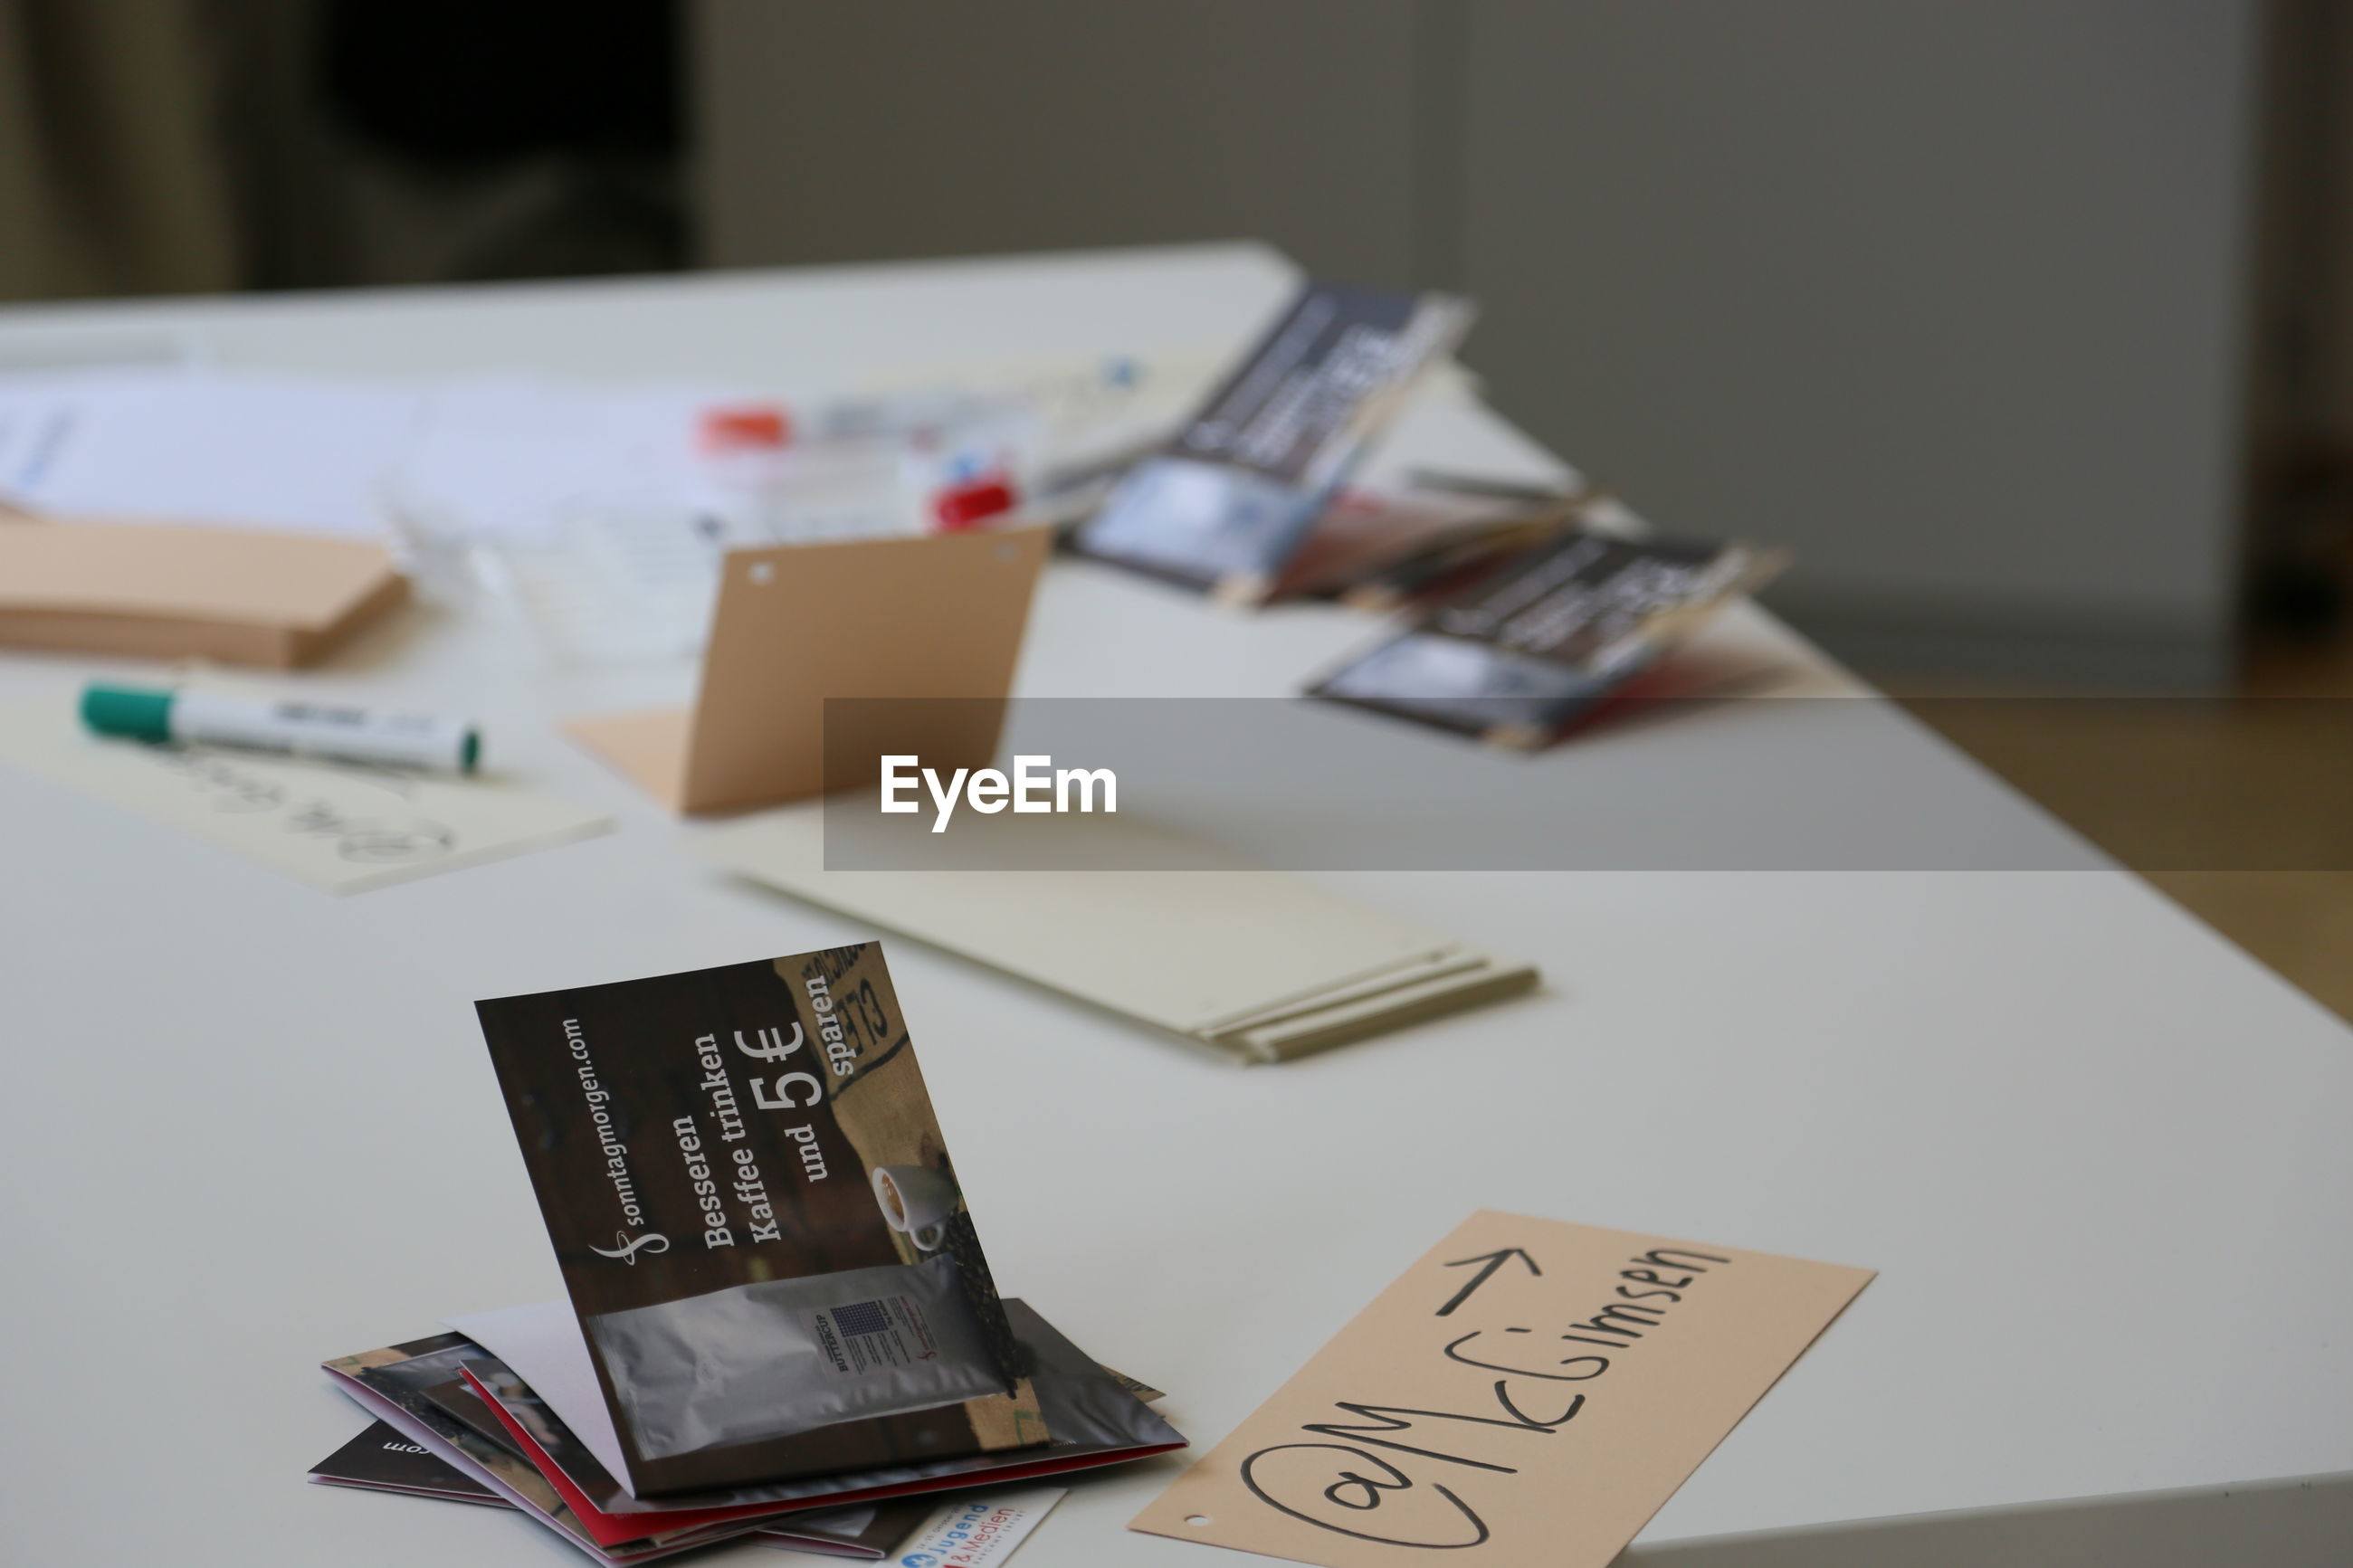 indoors, text, communication, western script, book, table, still life, paper, education, close-up, selective focus, no people, high angle view, document, pen, focus on foreground, desk, home interior, page, number